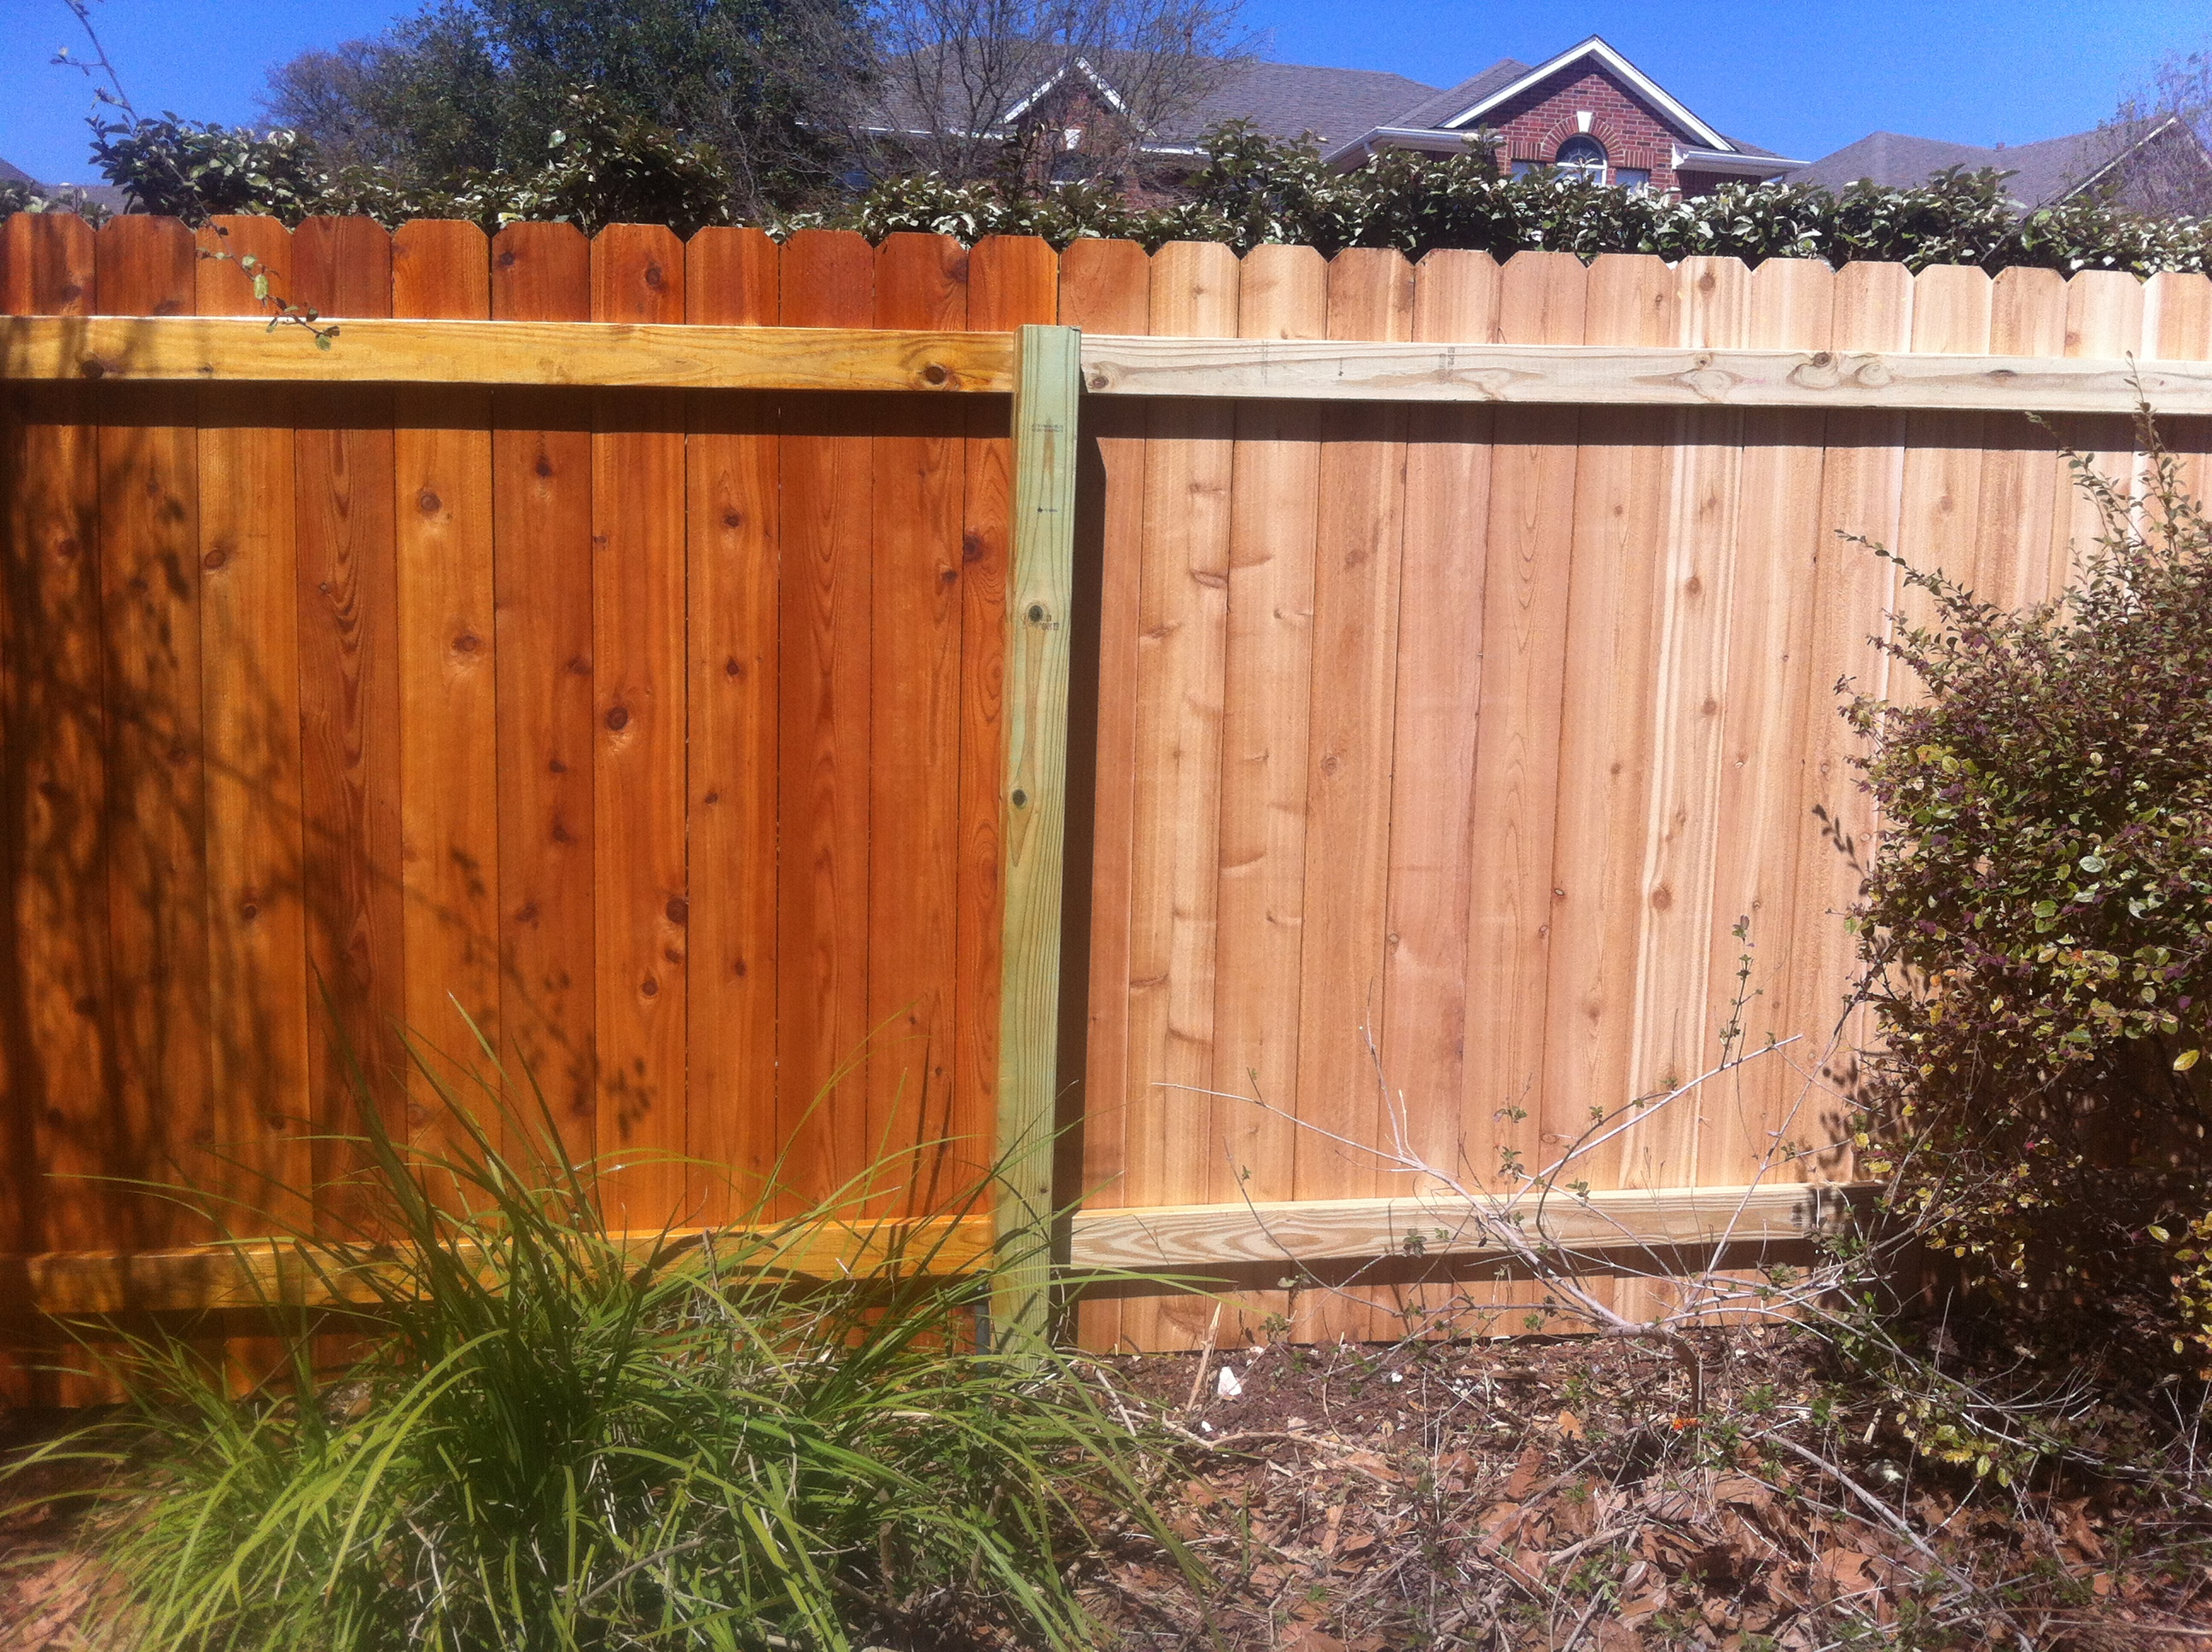 Best Stain For Cedar Fence Tyres2c within sizing 2592 X 1936